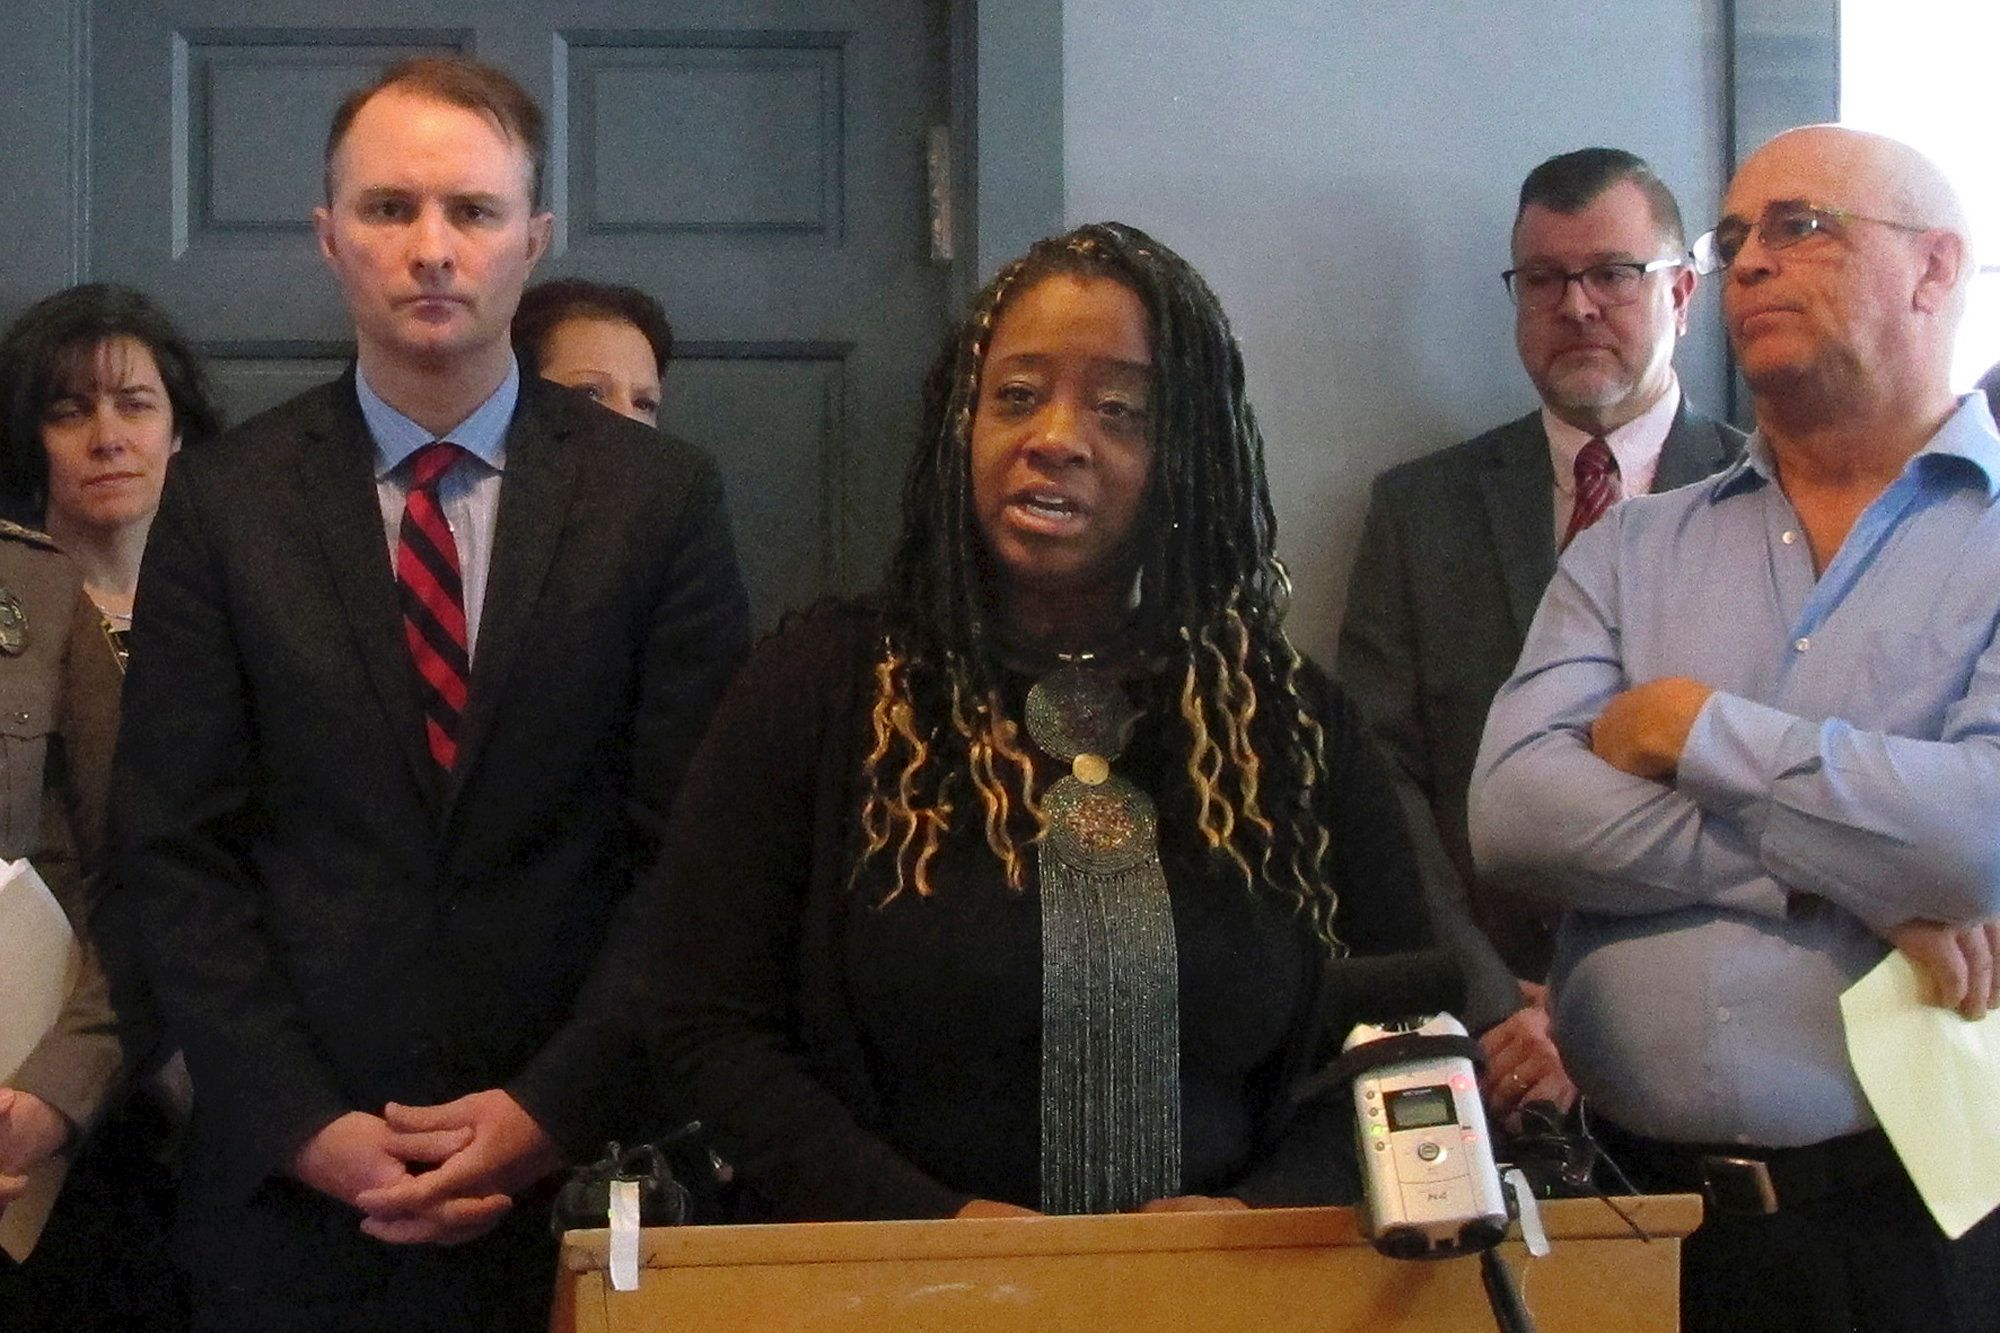 White Supremacist Who Harassed Vermont Lawmaker Crashes Her Press Conference